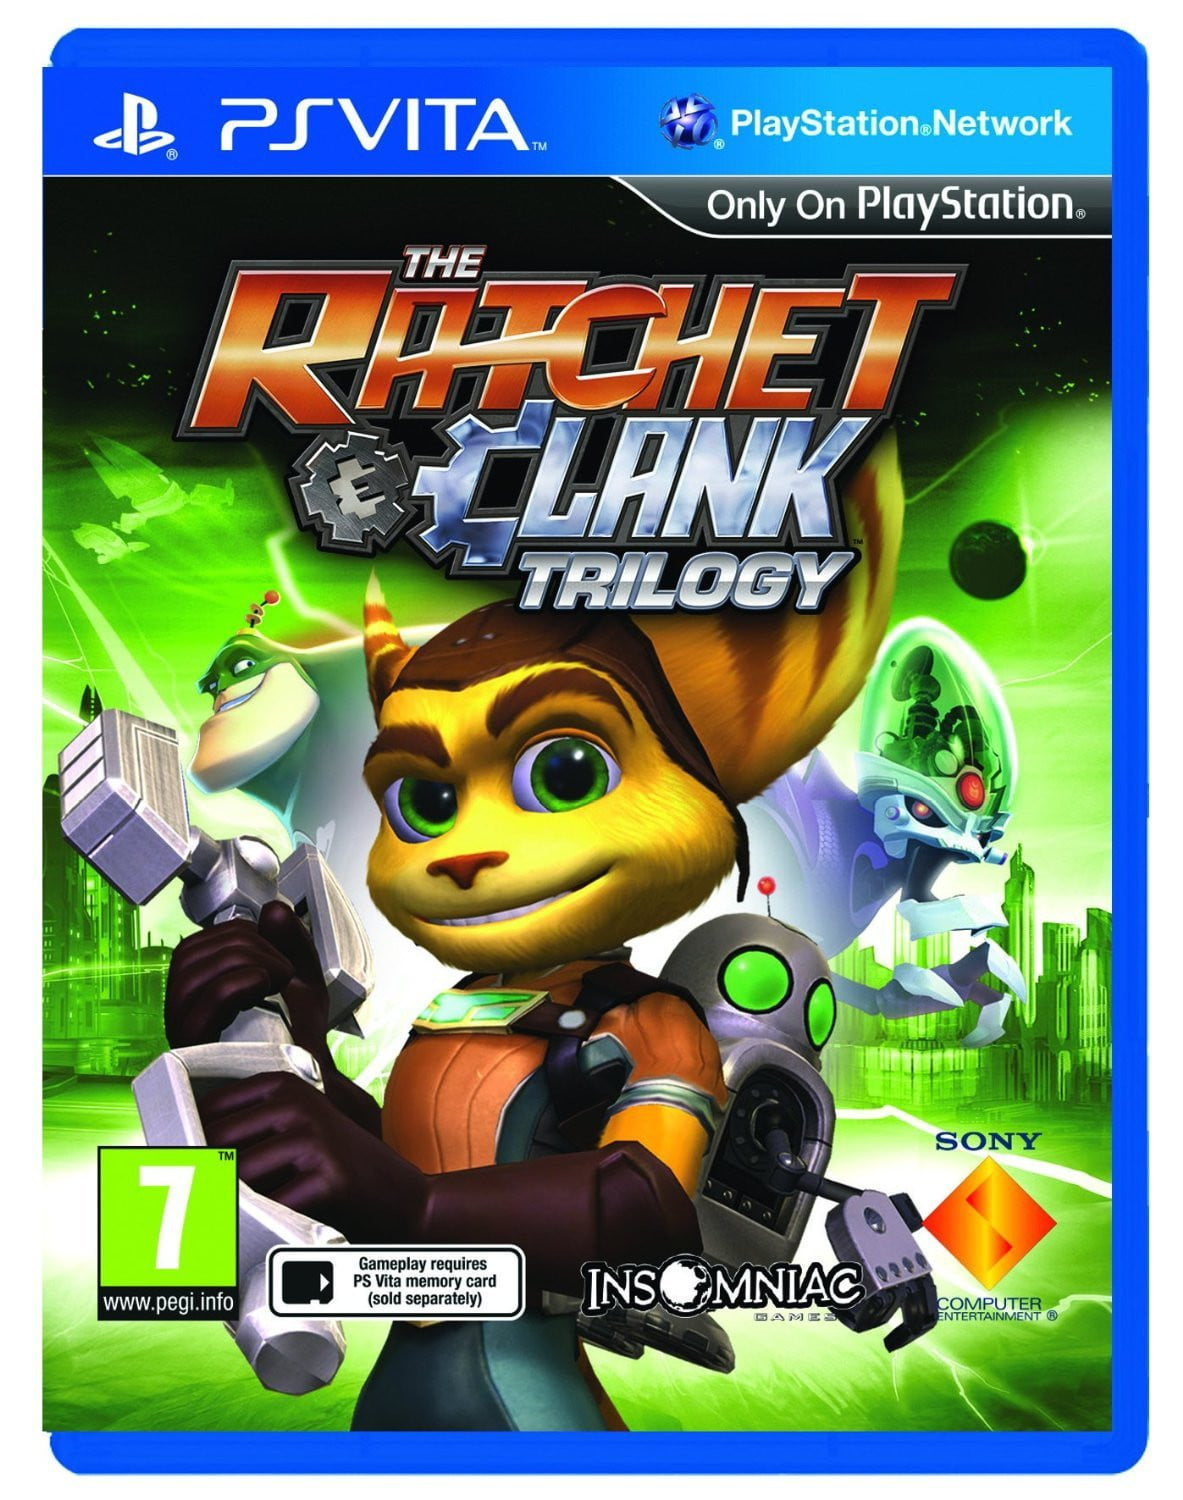 Buy Ratchet & Clank PS Vita in Egypt - Shamy Stores